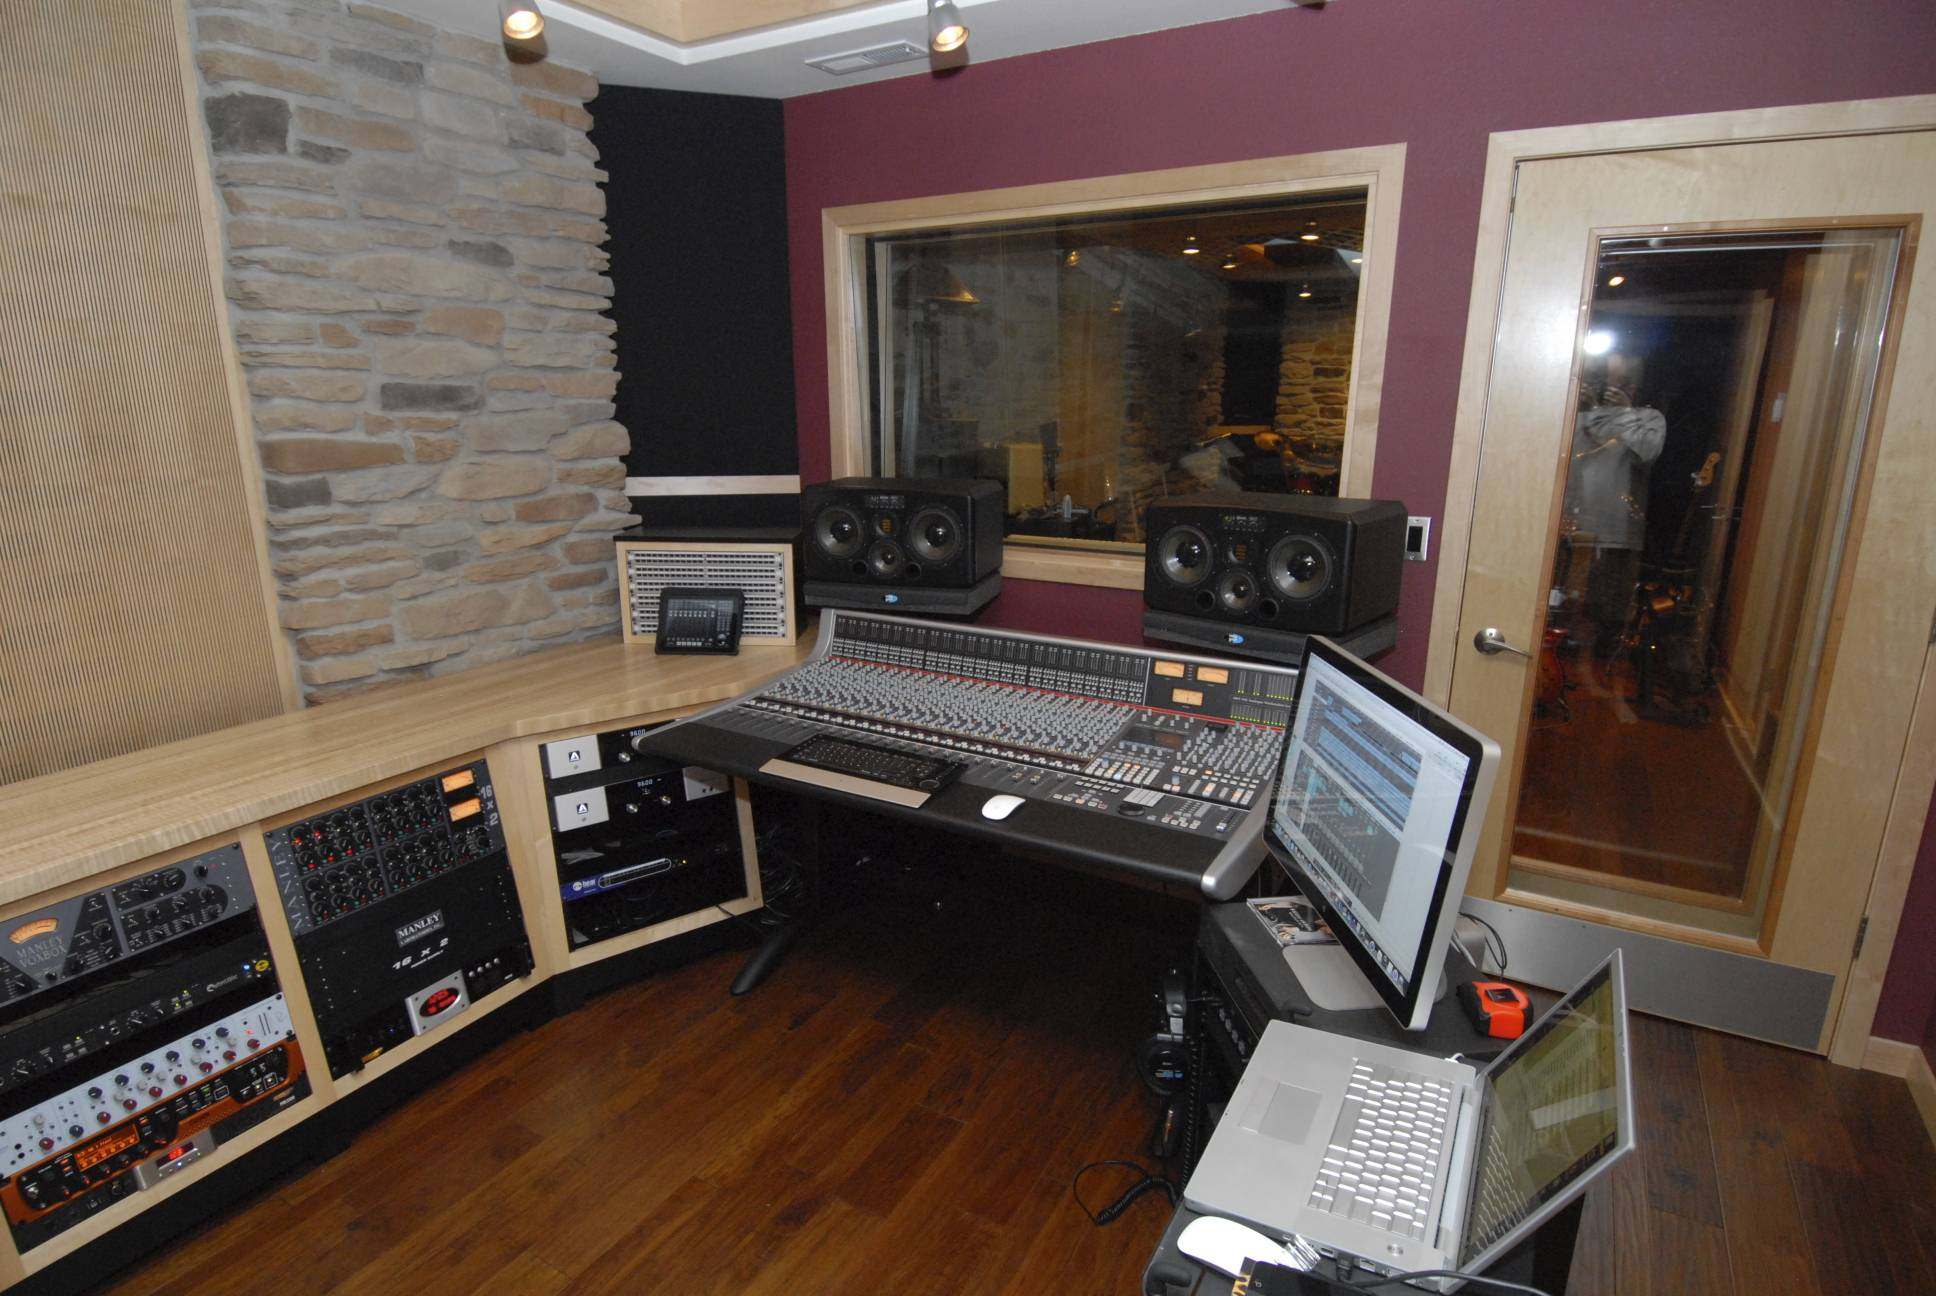 Grendel 39 s lair studio 7 basement project page 5 for Music studio flooring